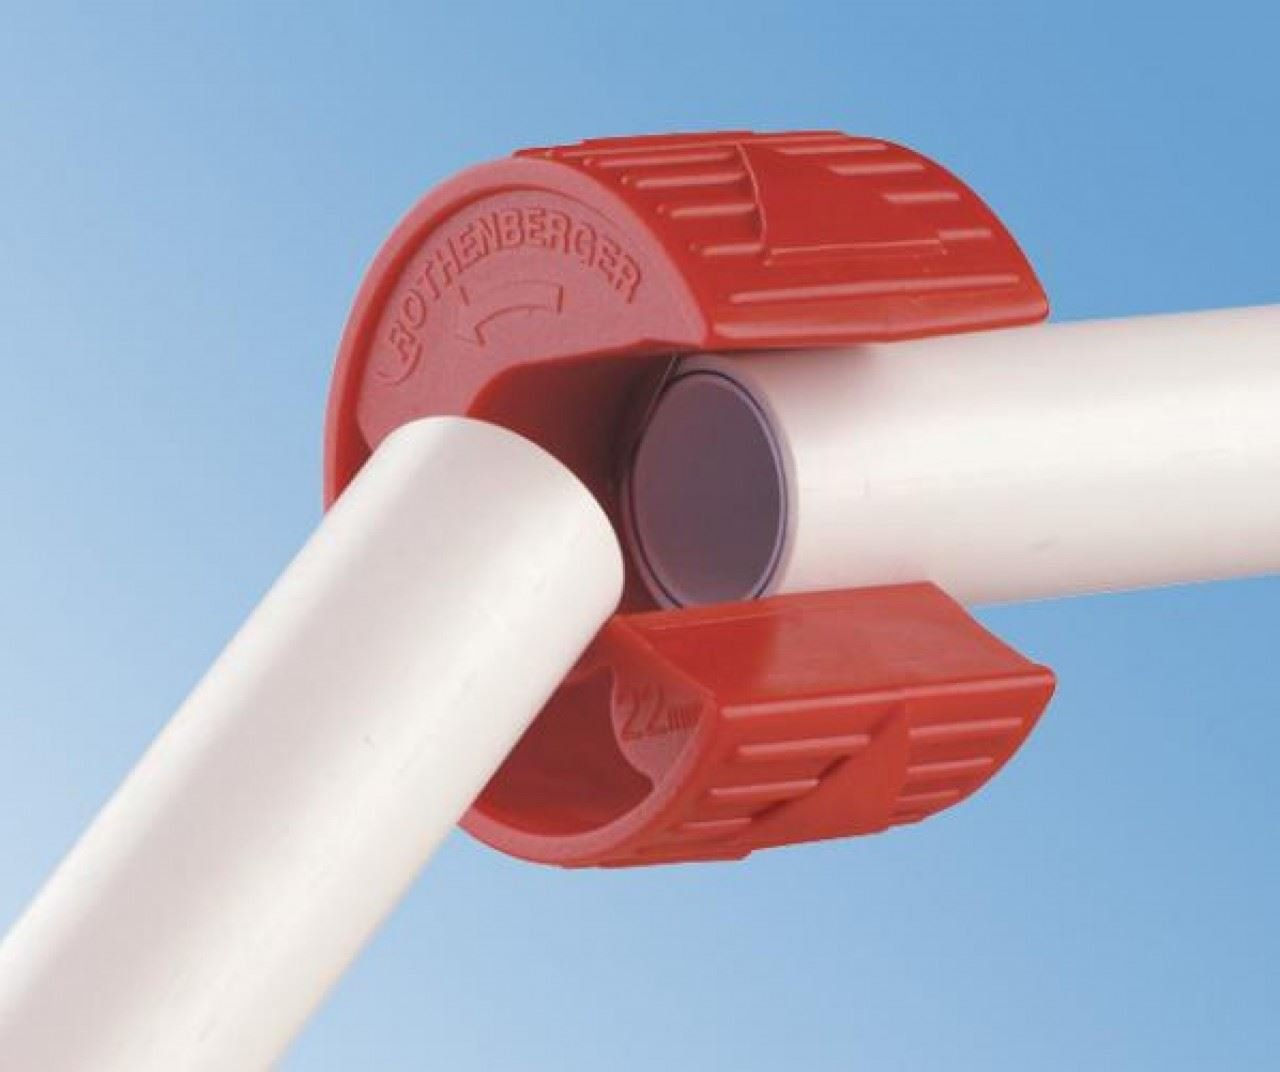 Rothenberger 15mm PEX Pipe Cutters